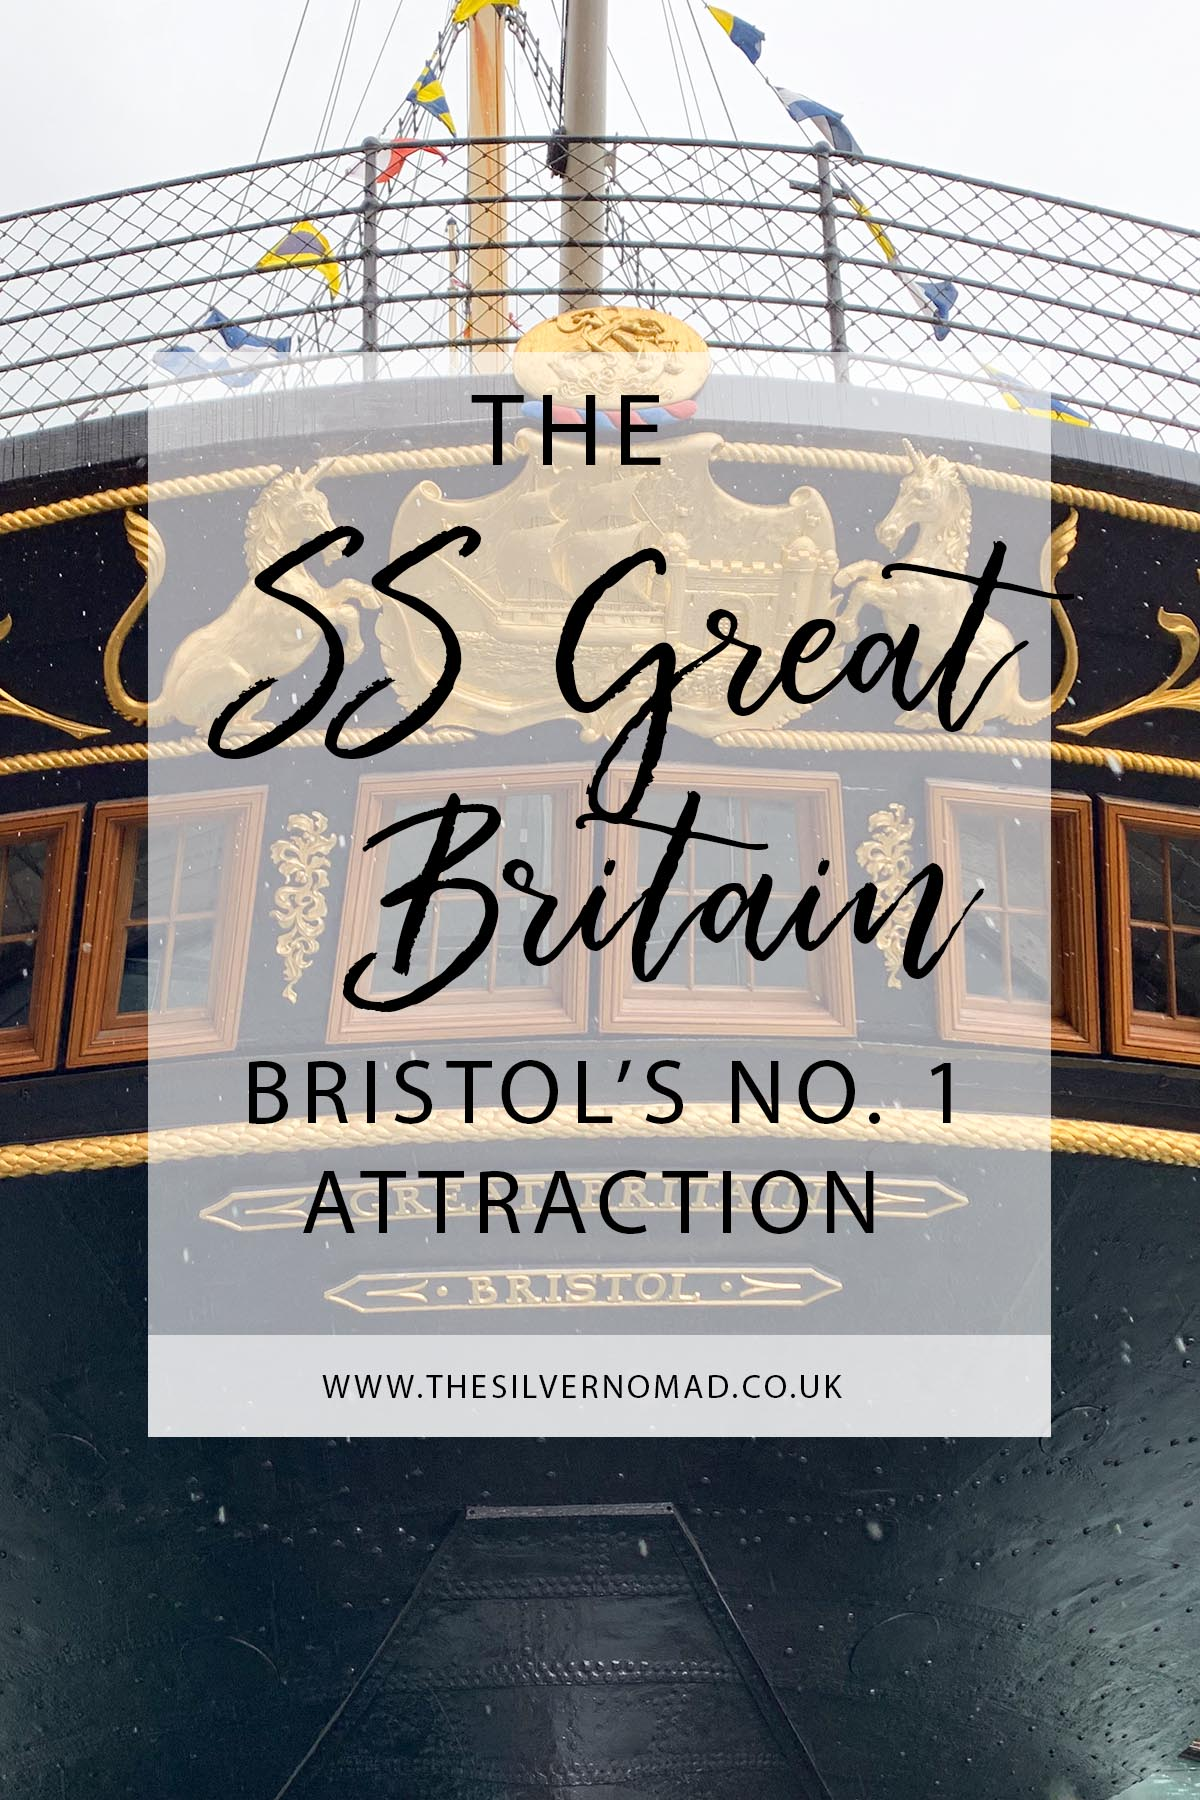 Brunel's SS Great Britain hailed as 'the greatest experiment since the Creation', is in dry dock in Bristol's Great Western Dockyard.